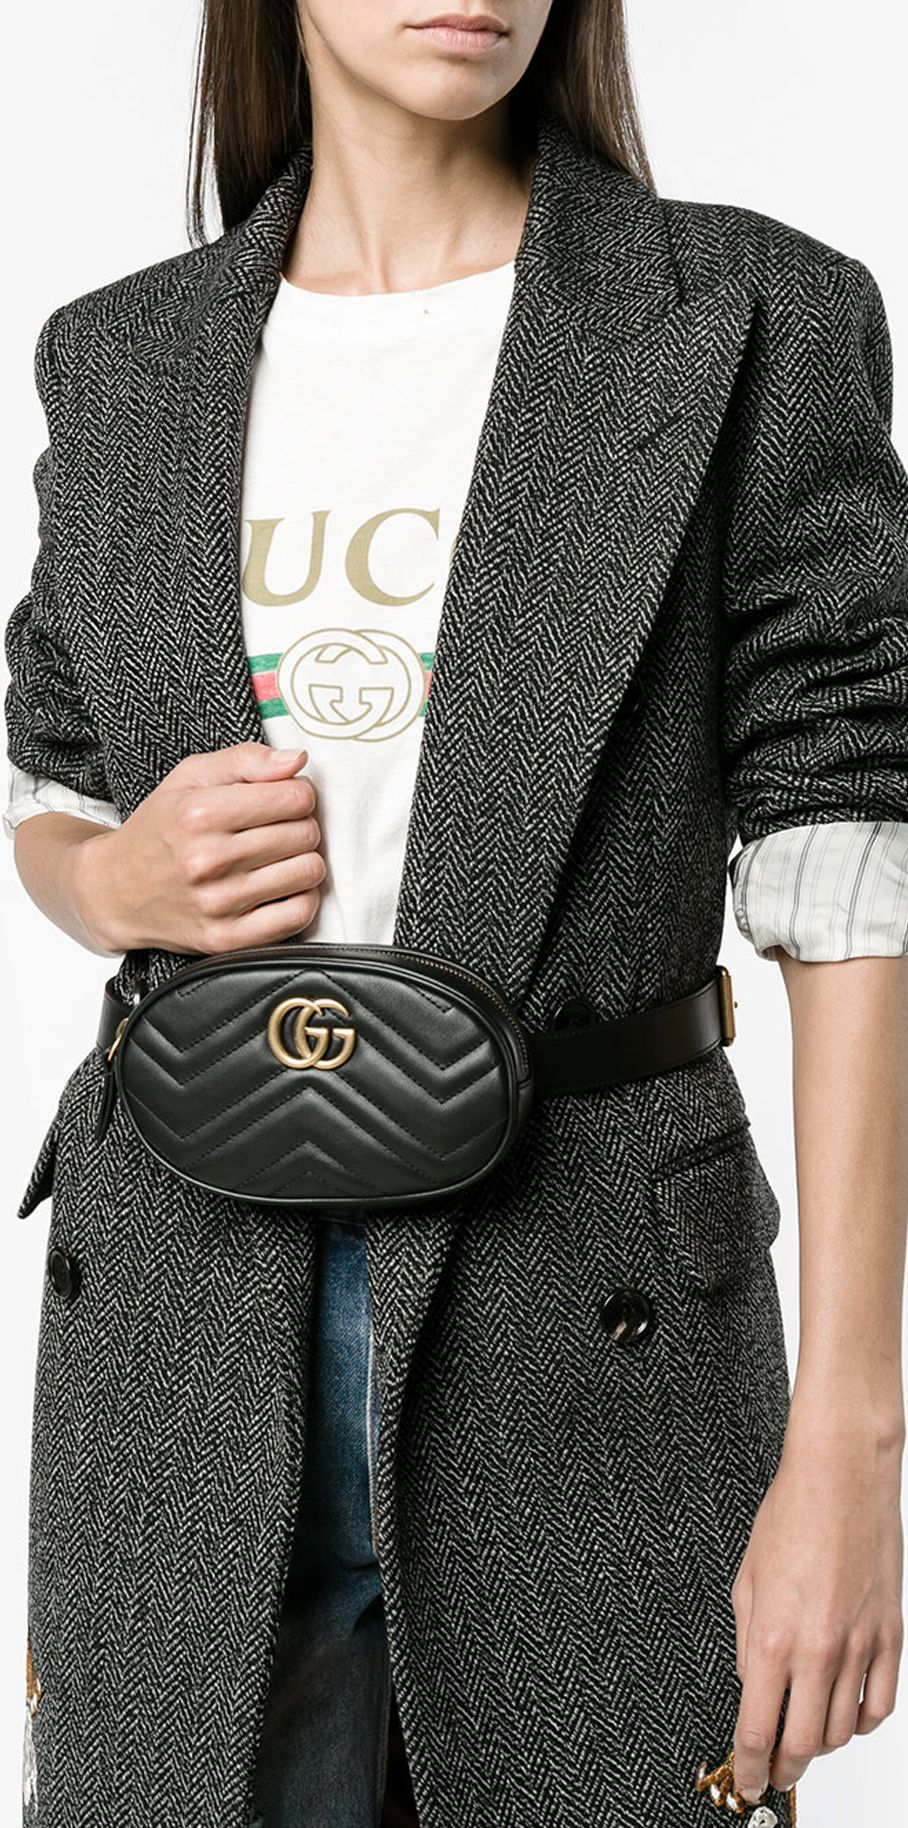 63dbfbfb725e GUCCI GG Marmont matelassé belt bag, explore new season Gucci on Farfetch.